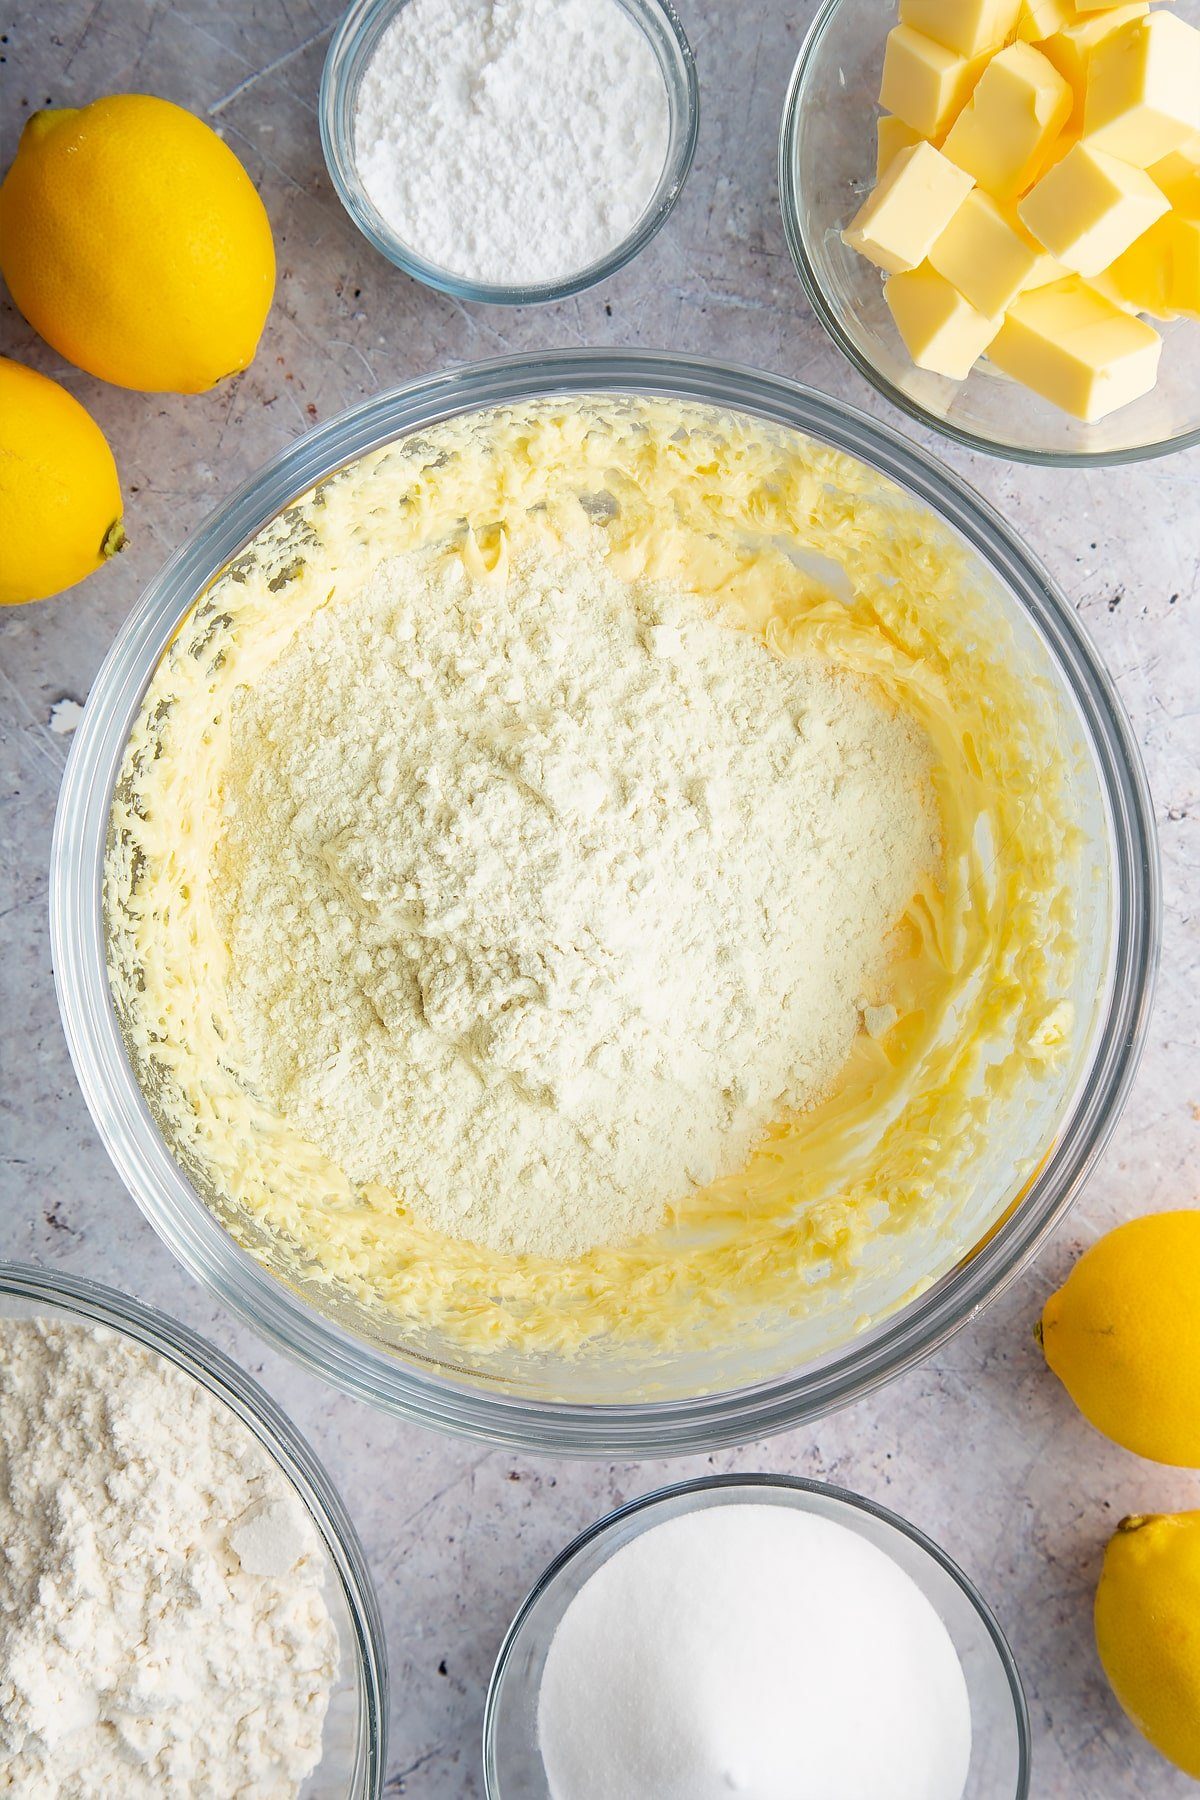 Butter, sugar and eggs creamed together with flour on top in a glass bowl. Ingredients to make lemon drizzle cake surround the bowl.